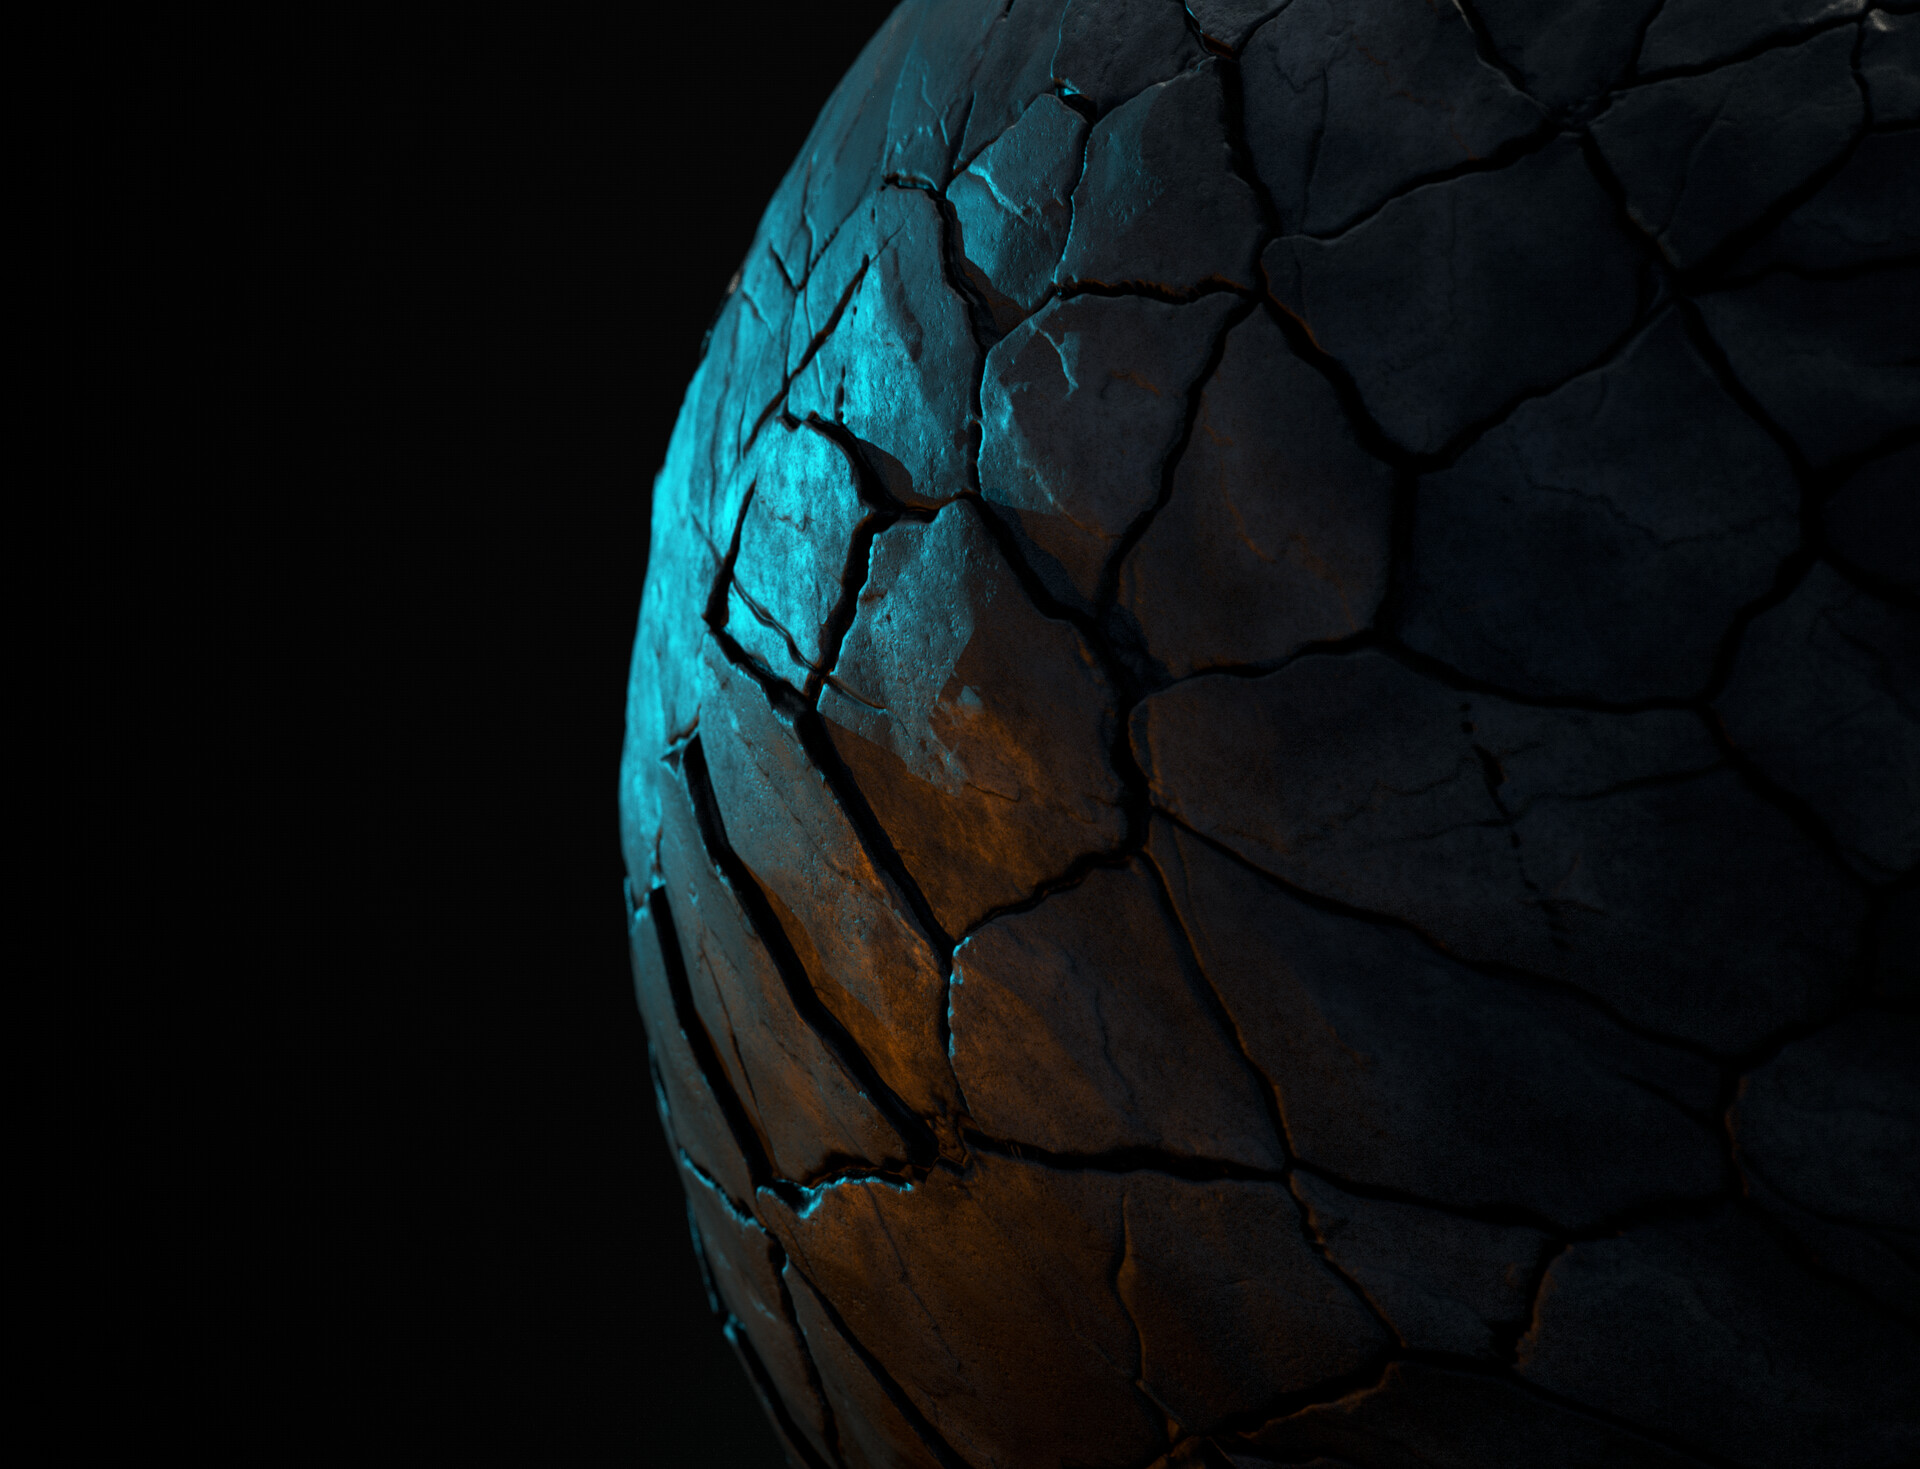 Classic Sphere Render with 2 colored lights to see the displacement better.